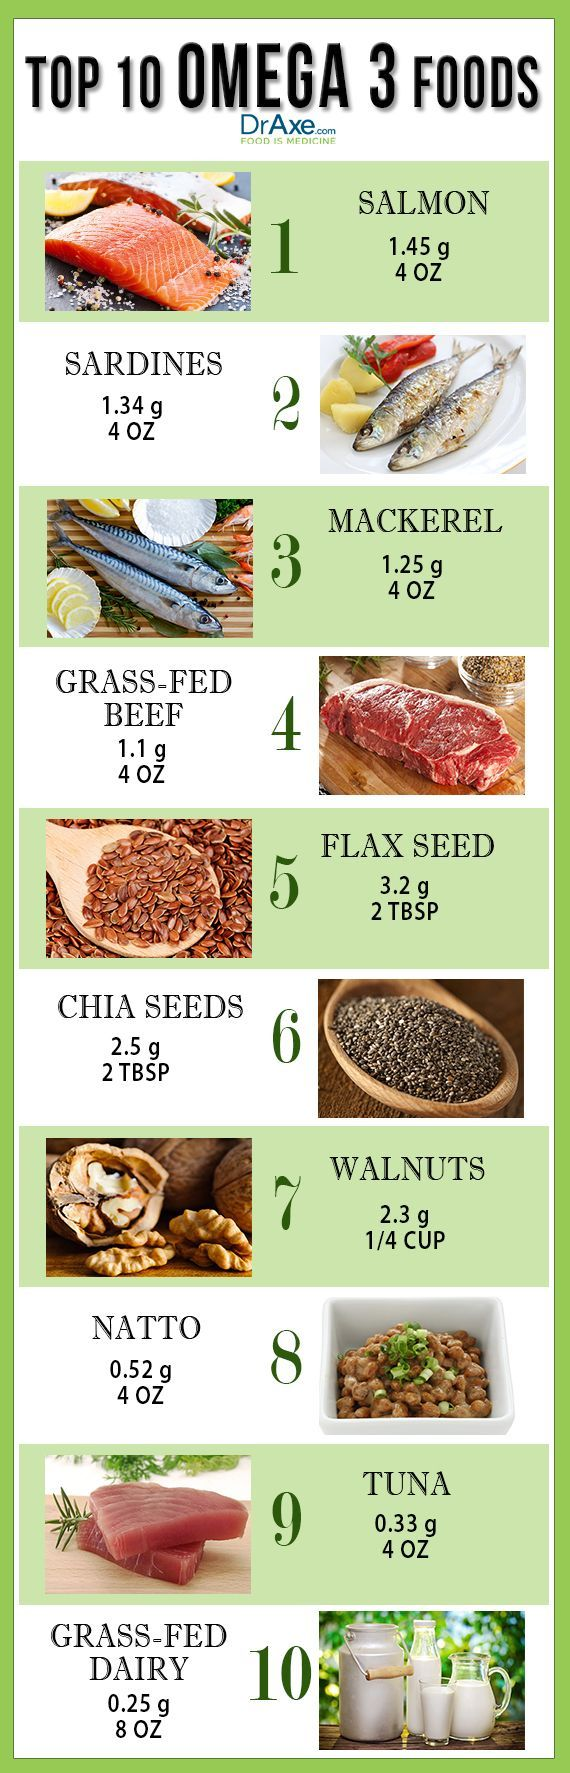 Best omega 3 supplements: Whole Foods  Top 10 Omega 3 Foods  Salmon, sardines, mackerel, grass-fed beef, flax seed, chia seeds, walnuts, natto, tuna, grass-fed dairy